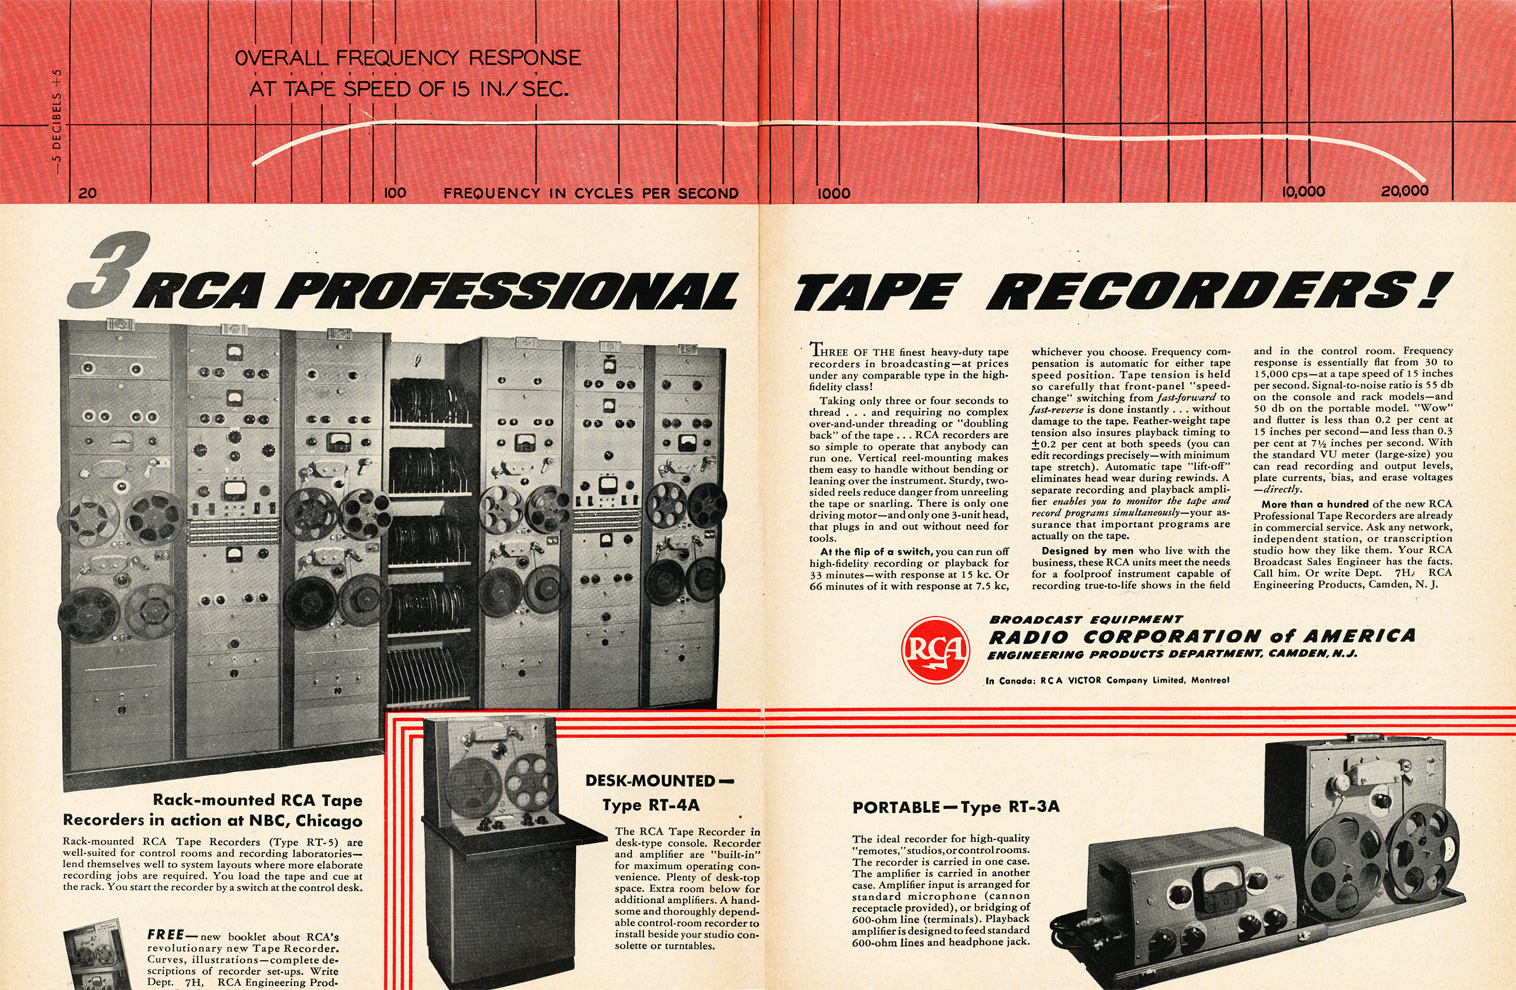 1949 RCA Professional reel to reel tape recorder ad in Reel2ReelTexas.com's vintage recording collection